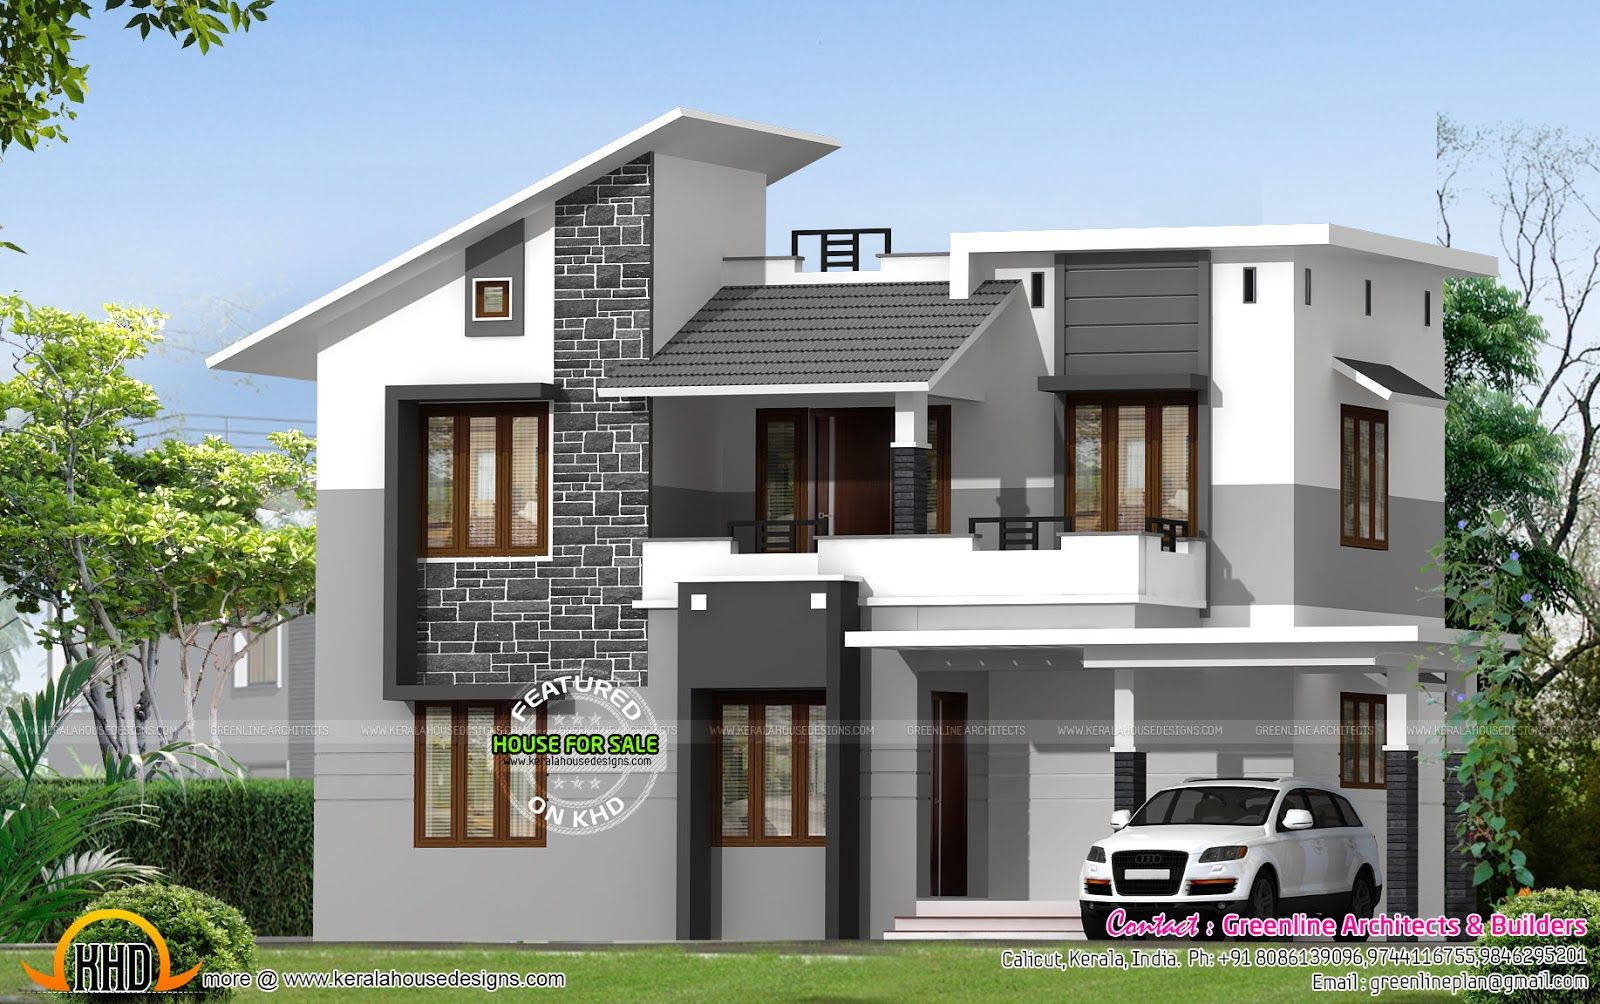 Single Floor House Front Wall Tiles Designs Best Ideas About Modern Entry  Entrance With Beautiful Single. Single Floor House Front Wall Tiles Designs Best Ideas About